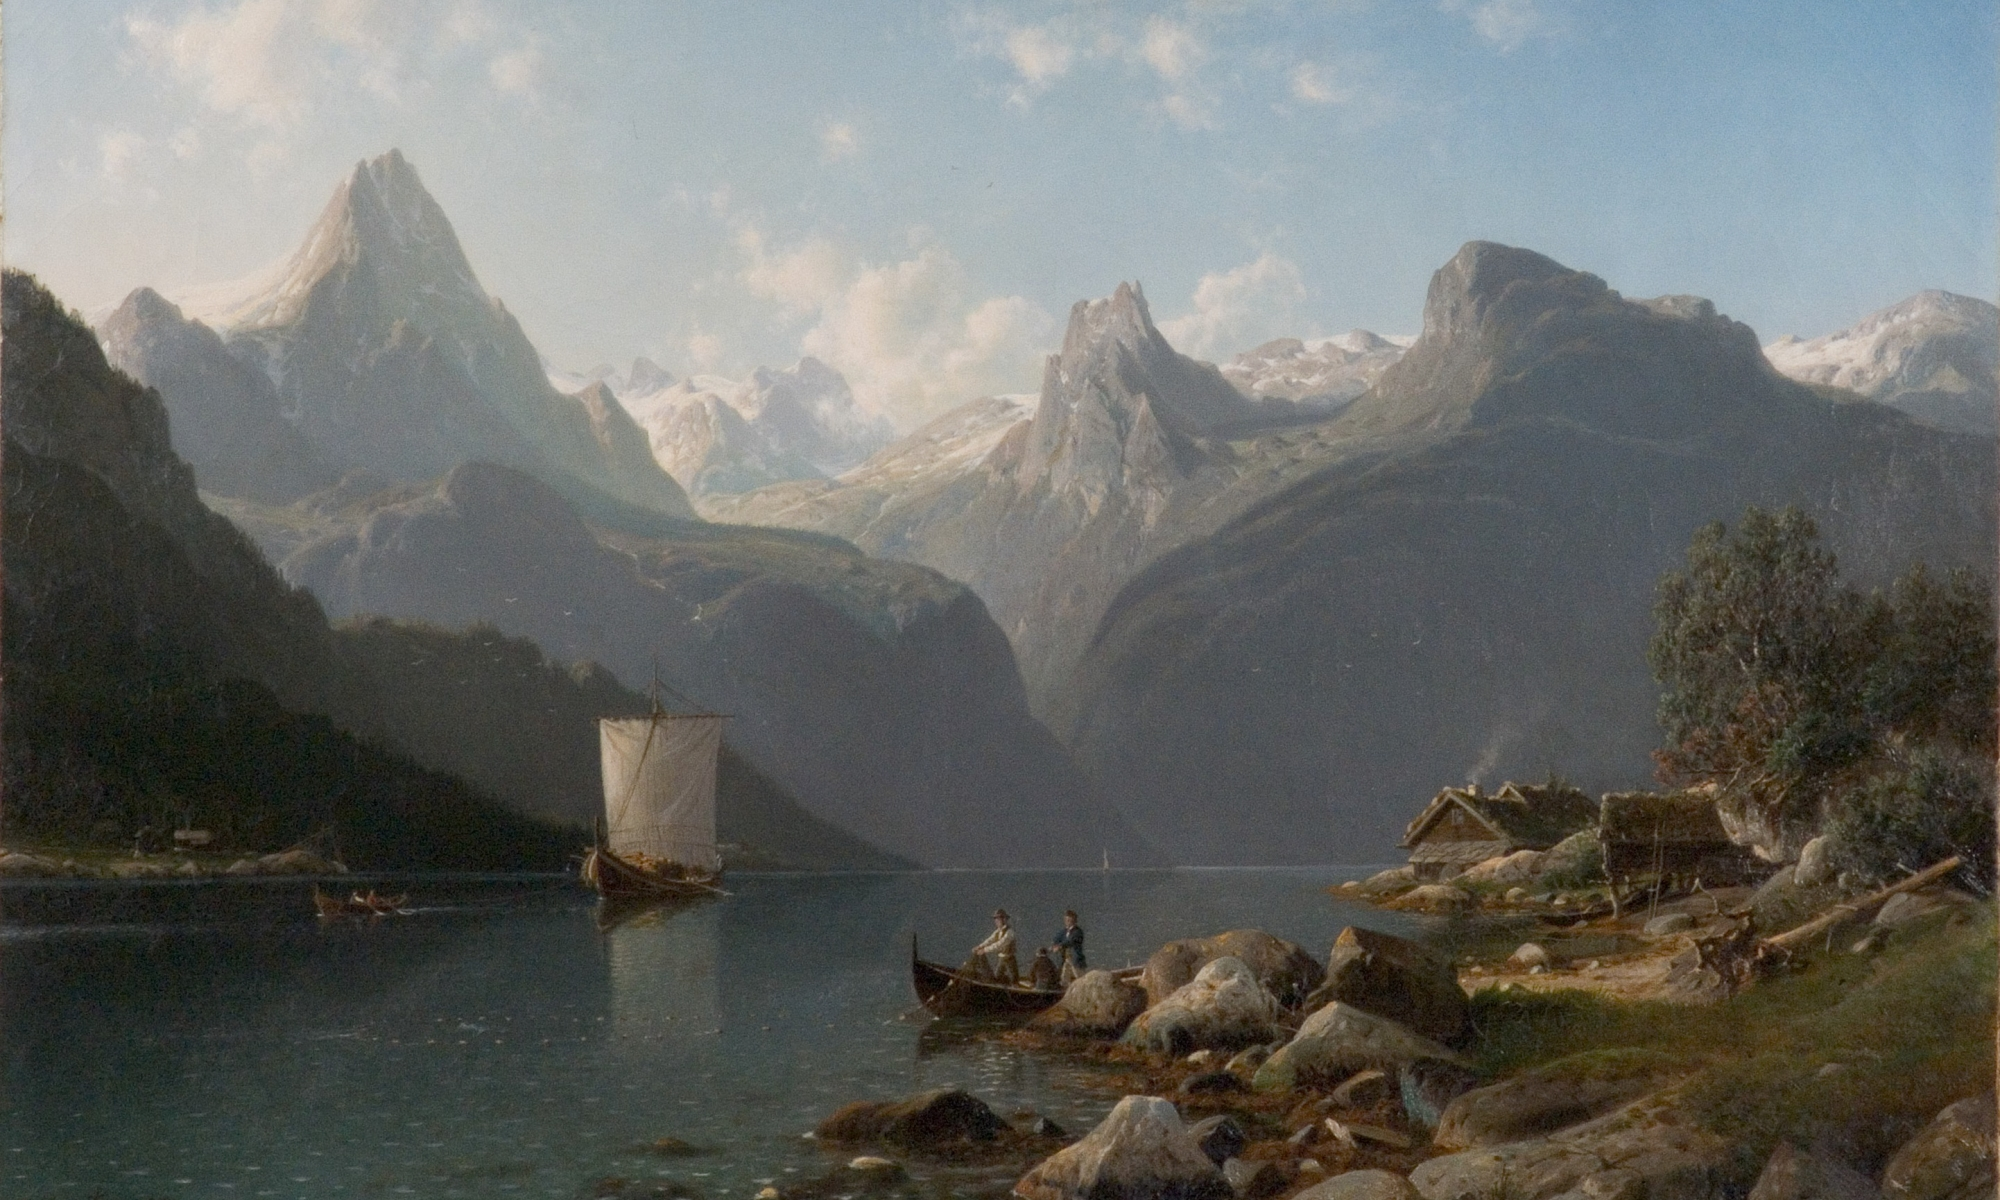 Fascinating Norway Landscape Painting from Romanticism to Modernism |  www.mkdw.de